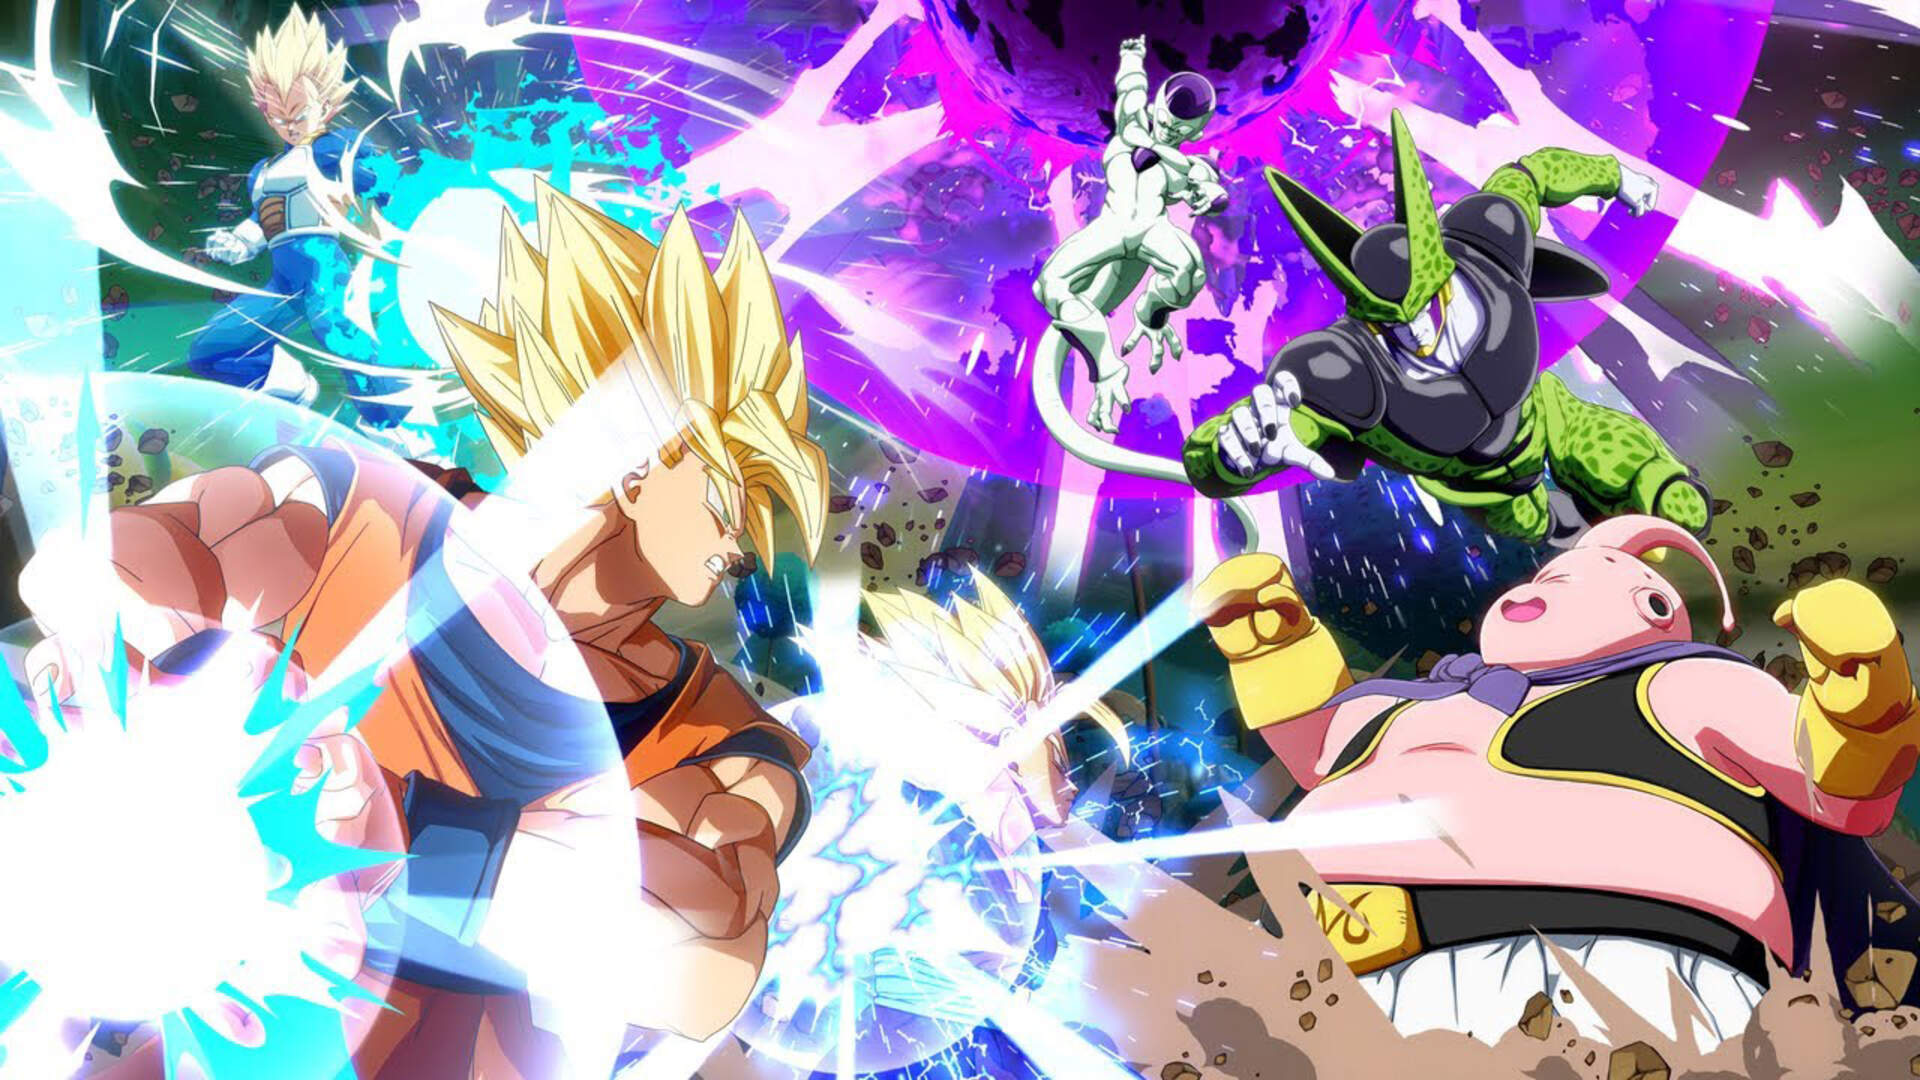 Recommended PC Requirements for Dragon Ball FighterZ Revealed